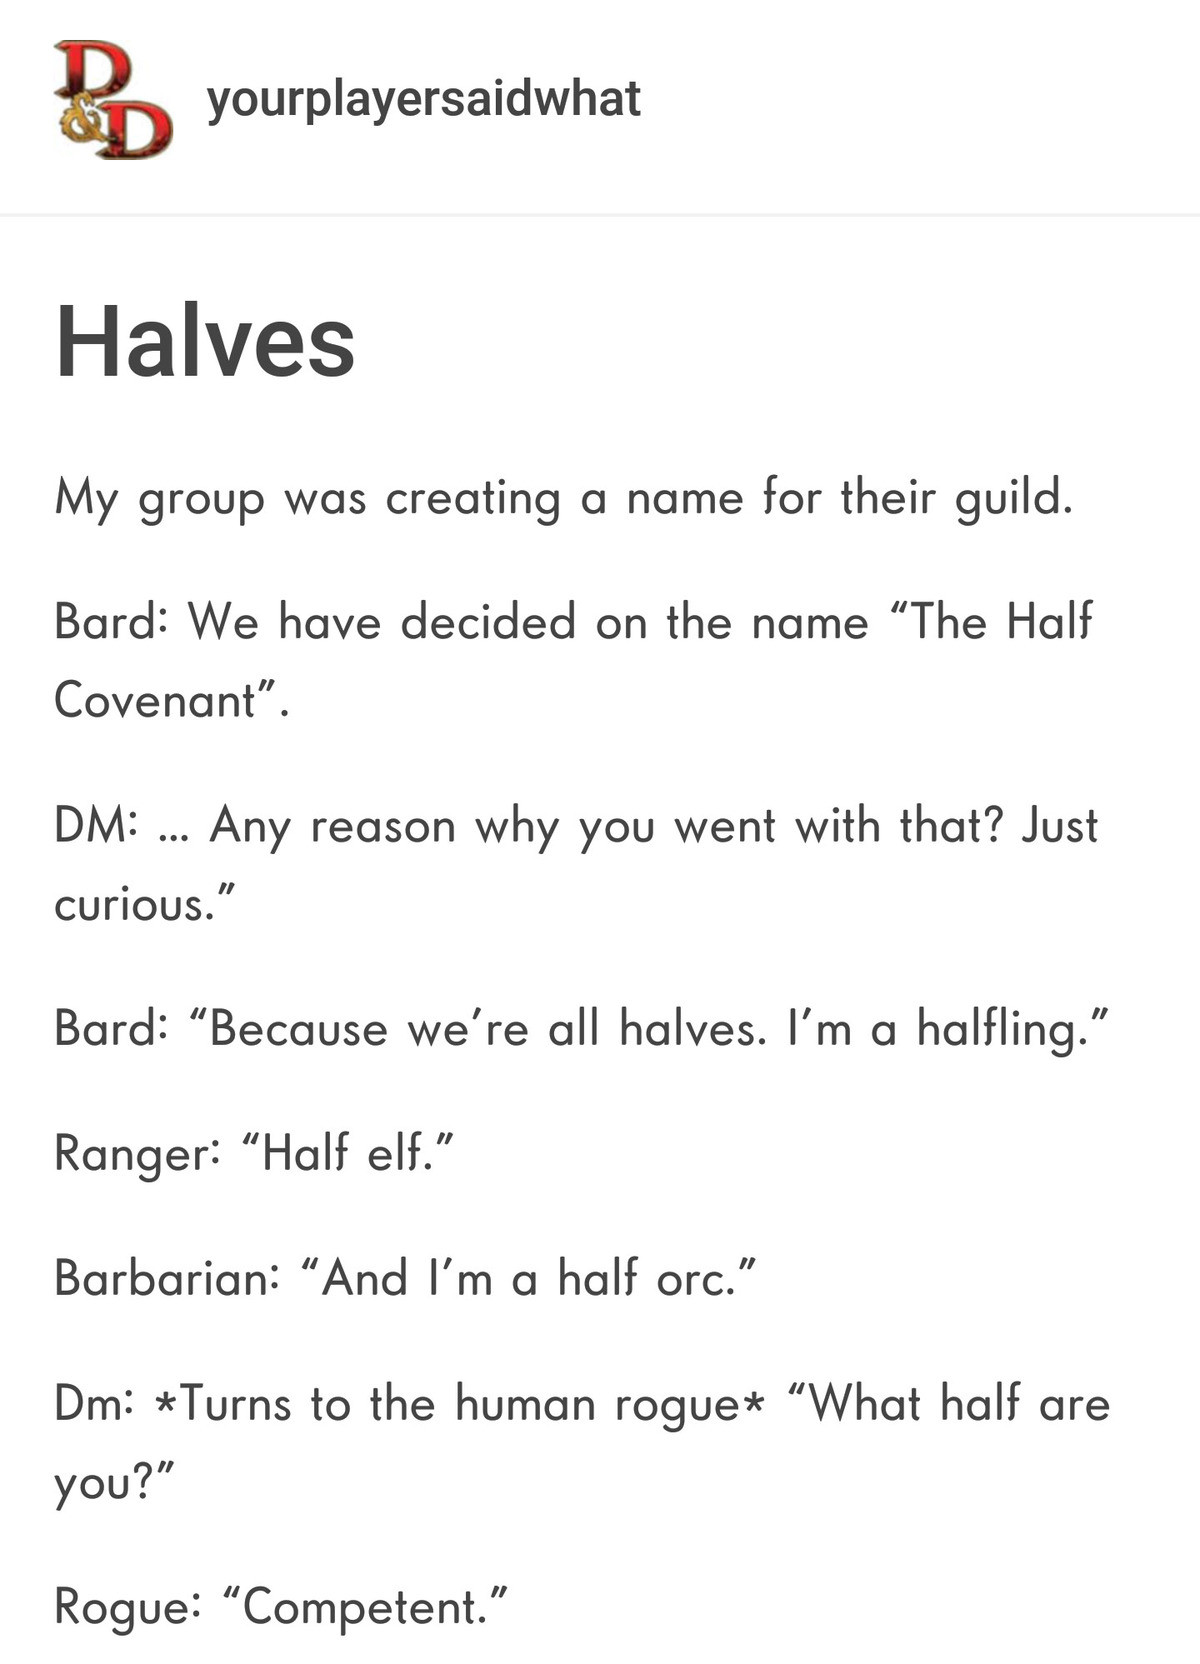 round long Horse. .. We once played a one-shot where we were a group of thieves who all had 1 level in bard. We used our identities as a musical troupe to infiltrate wealthy/powerfu